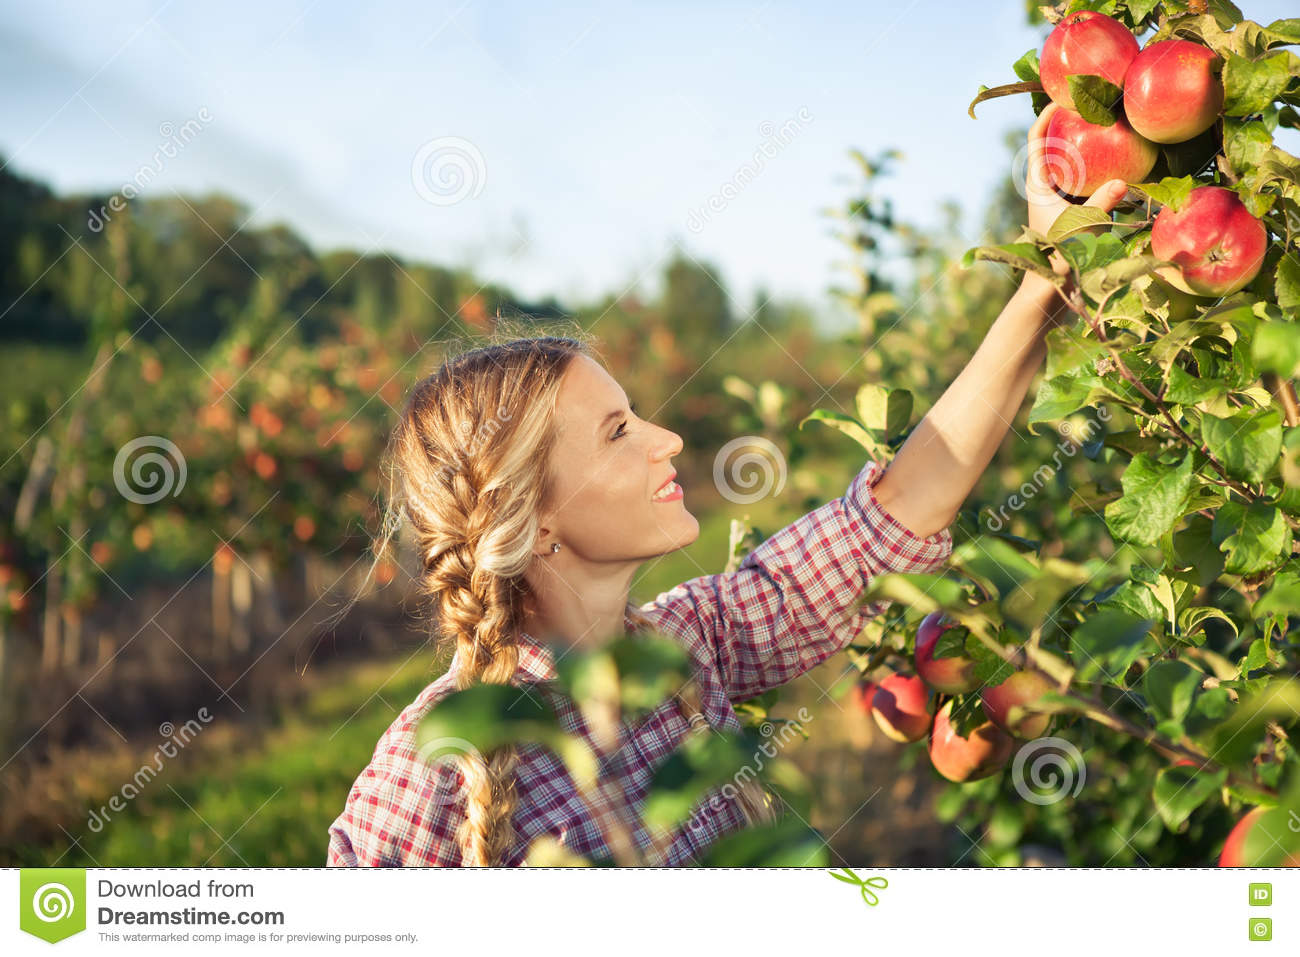 Beautiful young woman picking ripe organic apples